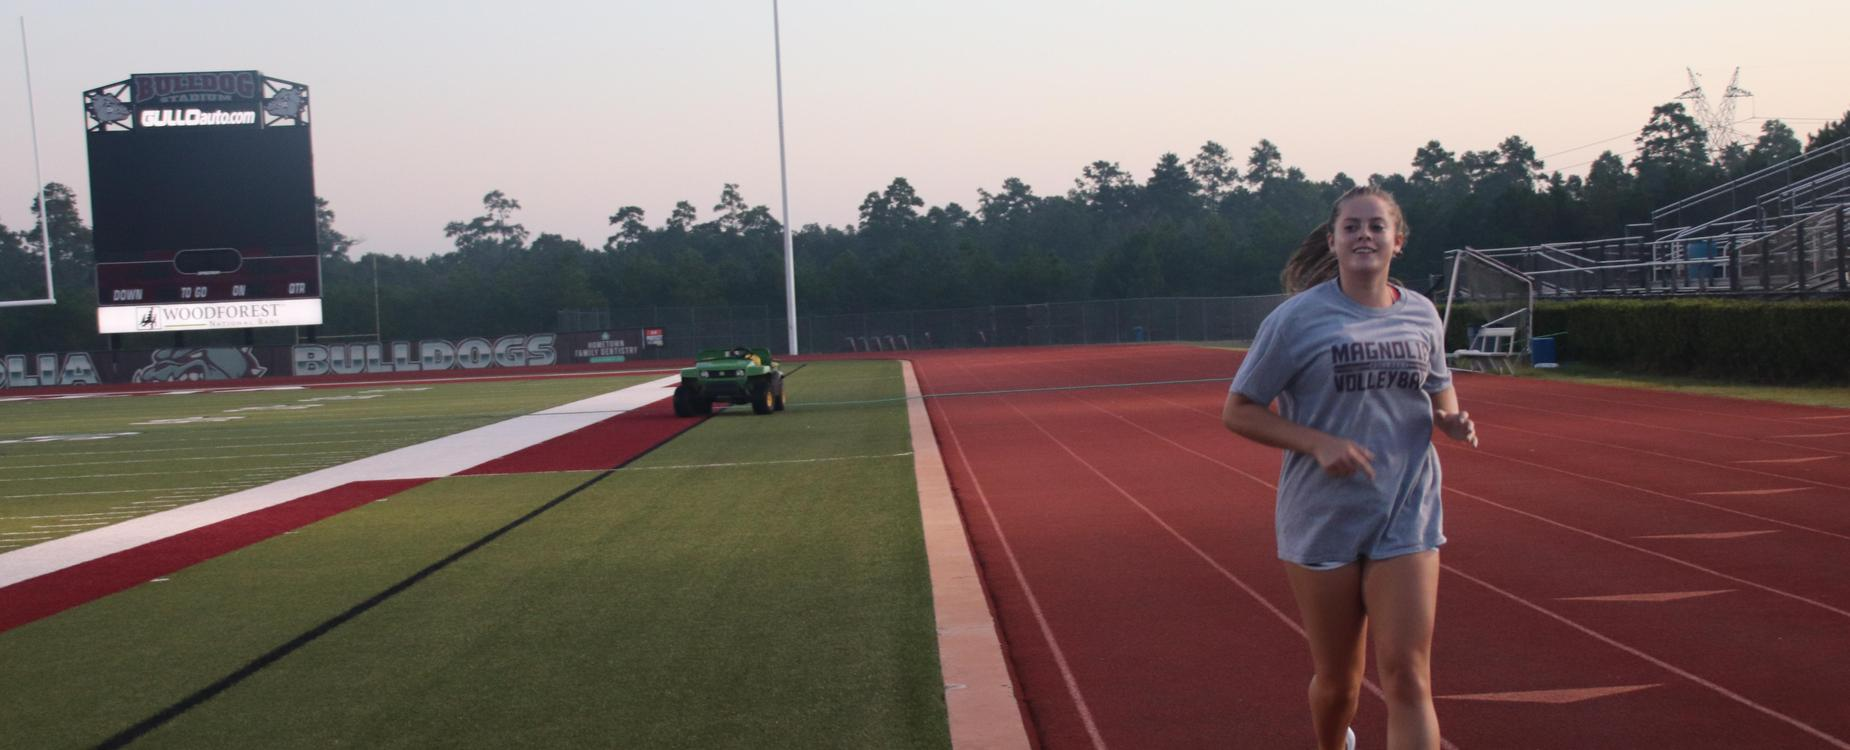 Student running on the track